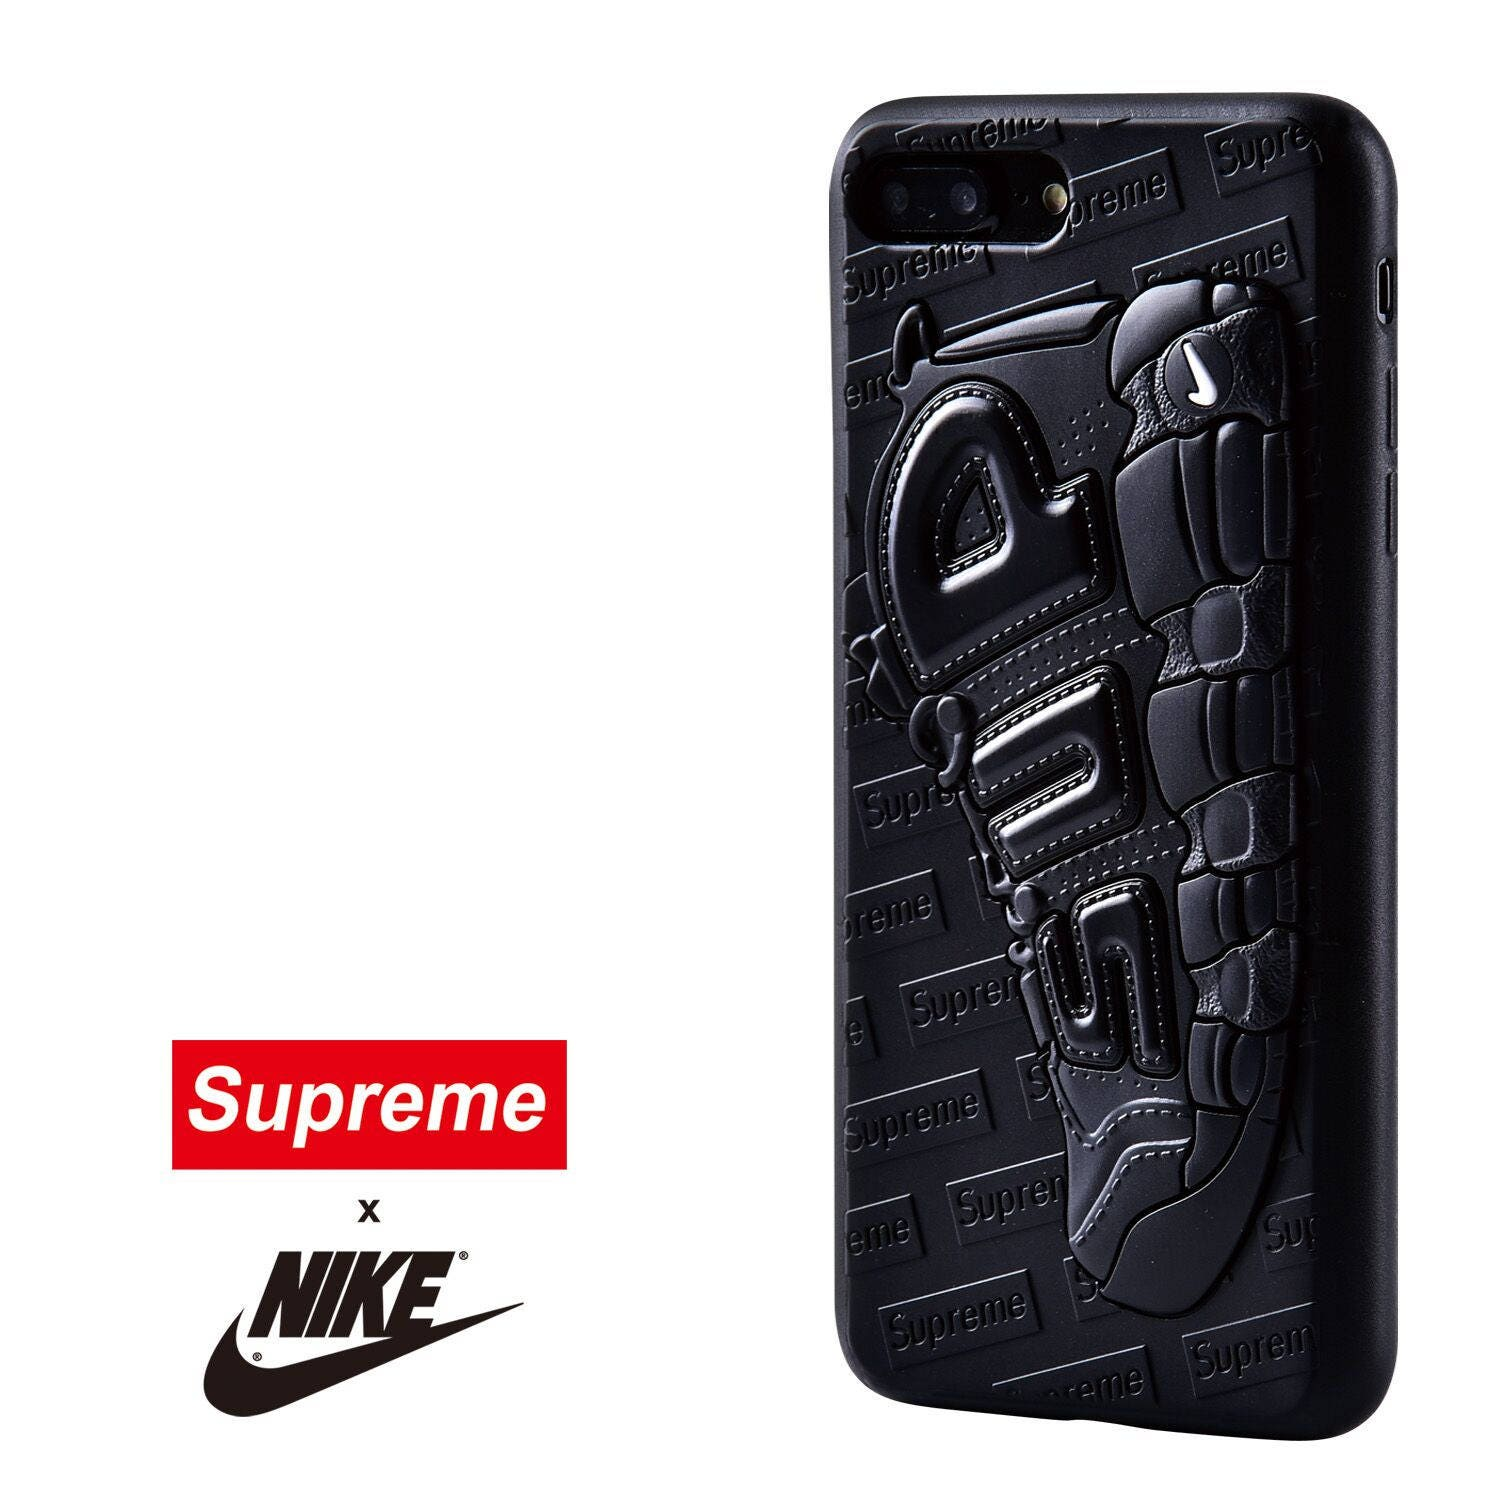 wholesale dealer 87d07 164f0 Supreme x Nike Uptempo 3D Textured iPhone Cases USA Stock iPhone 6 ...